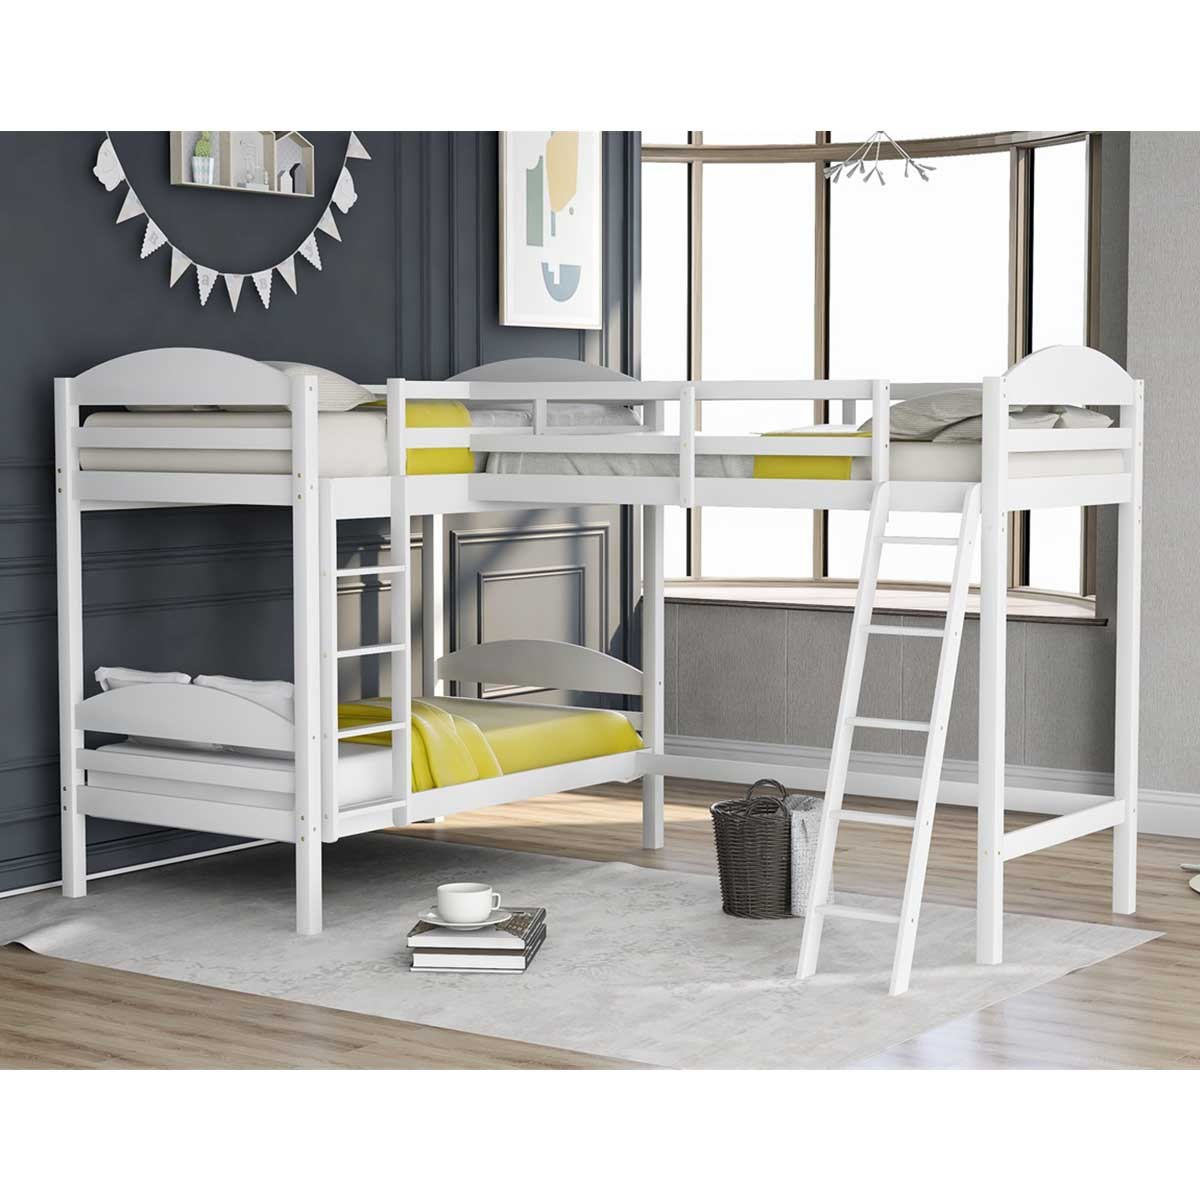 Picture of: Modernluxe L Shaped Twin Size Triple Bunk Bed Wooden Loft Bed Walmart Com Walmart Com